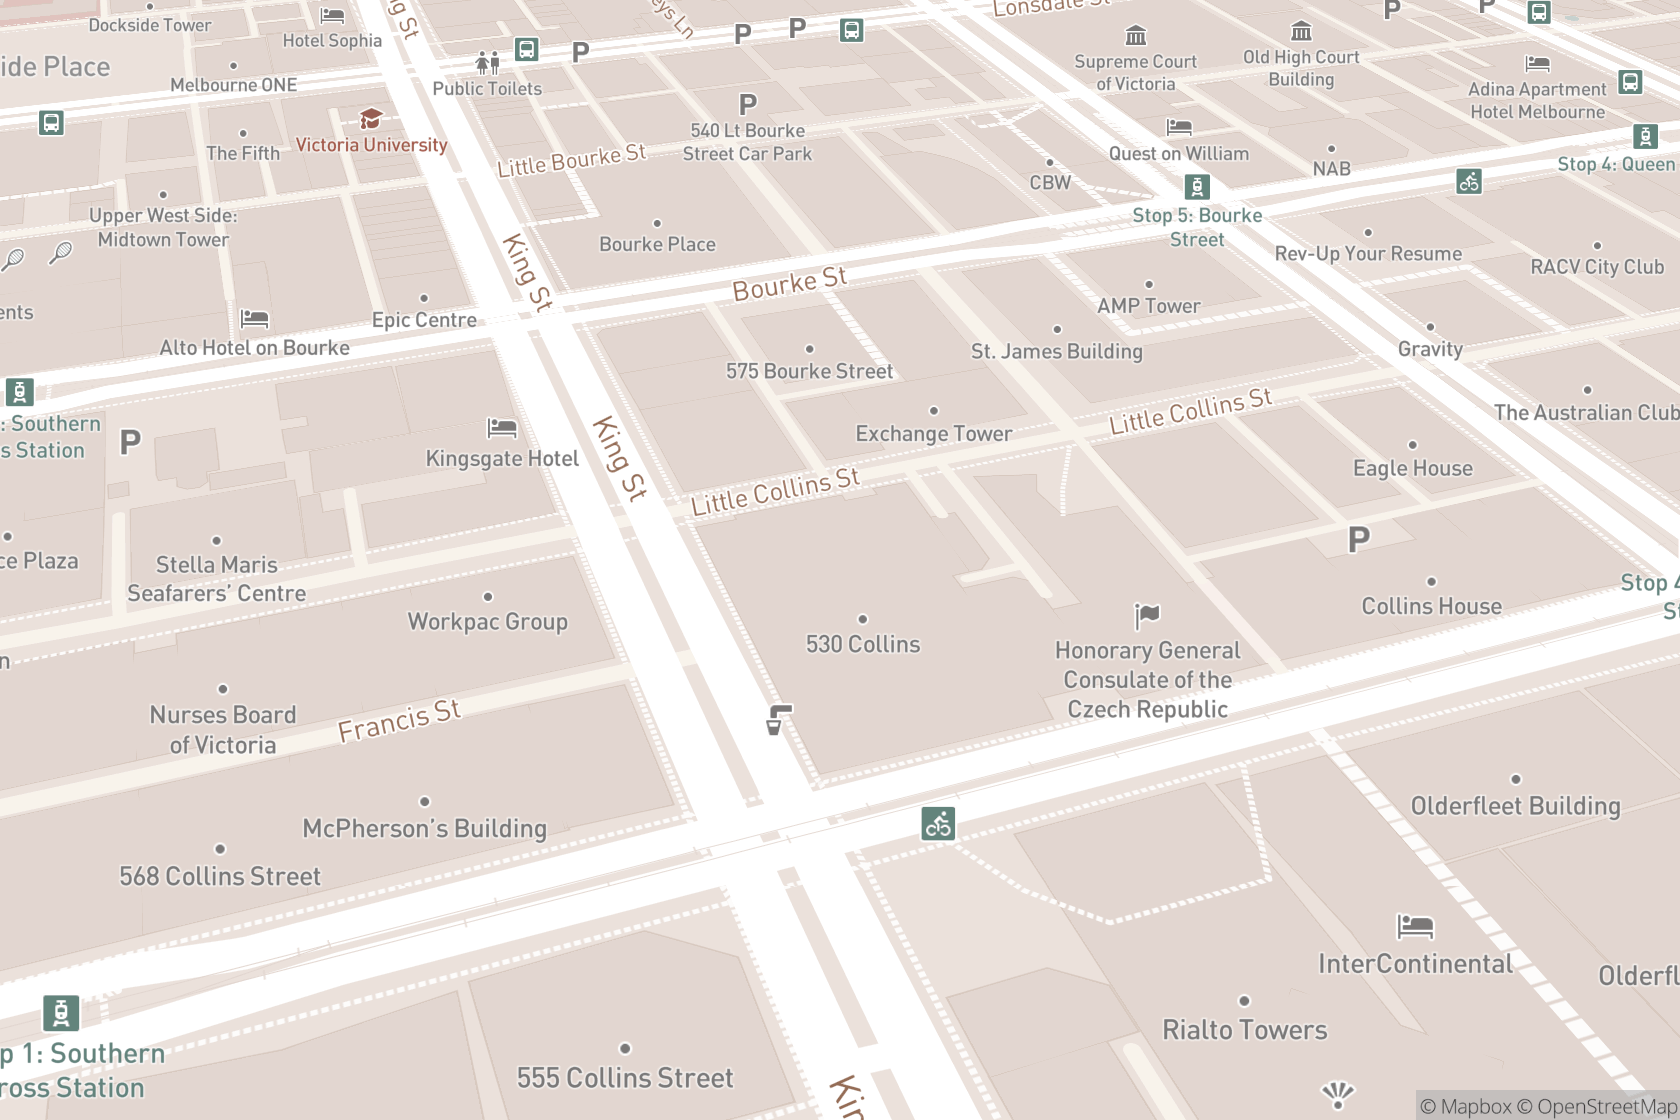 Clearskincare Clinics - Collins Street map location